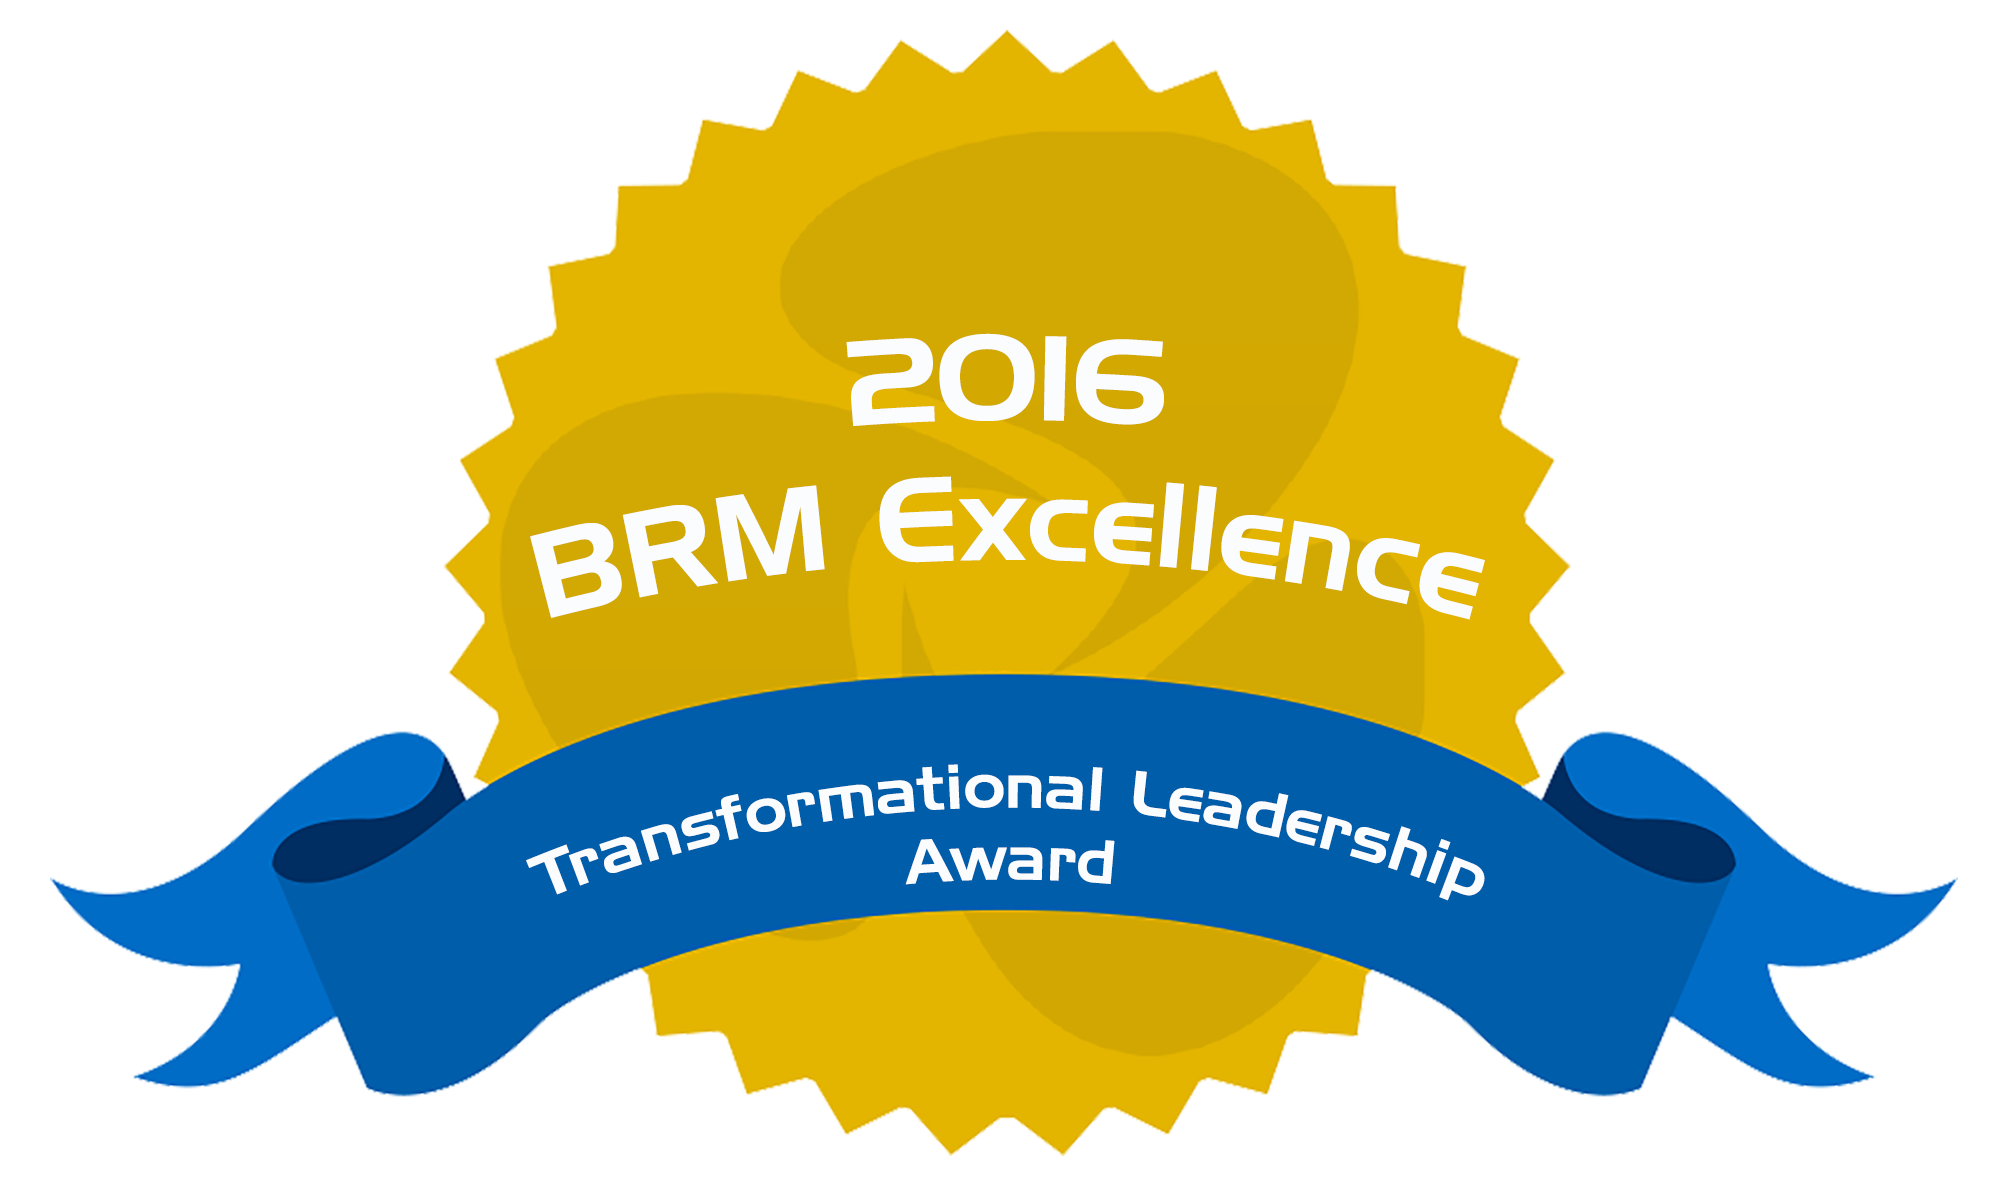 Transformational Leadership Award